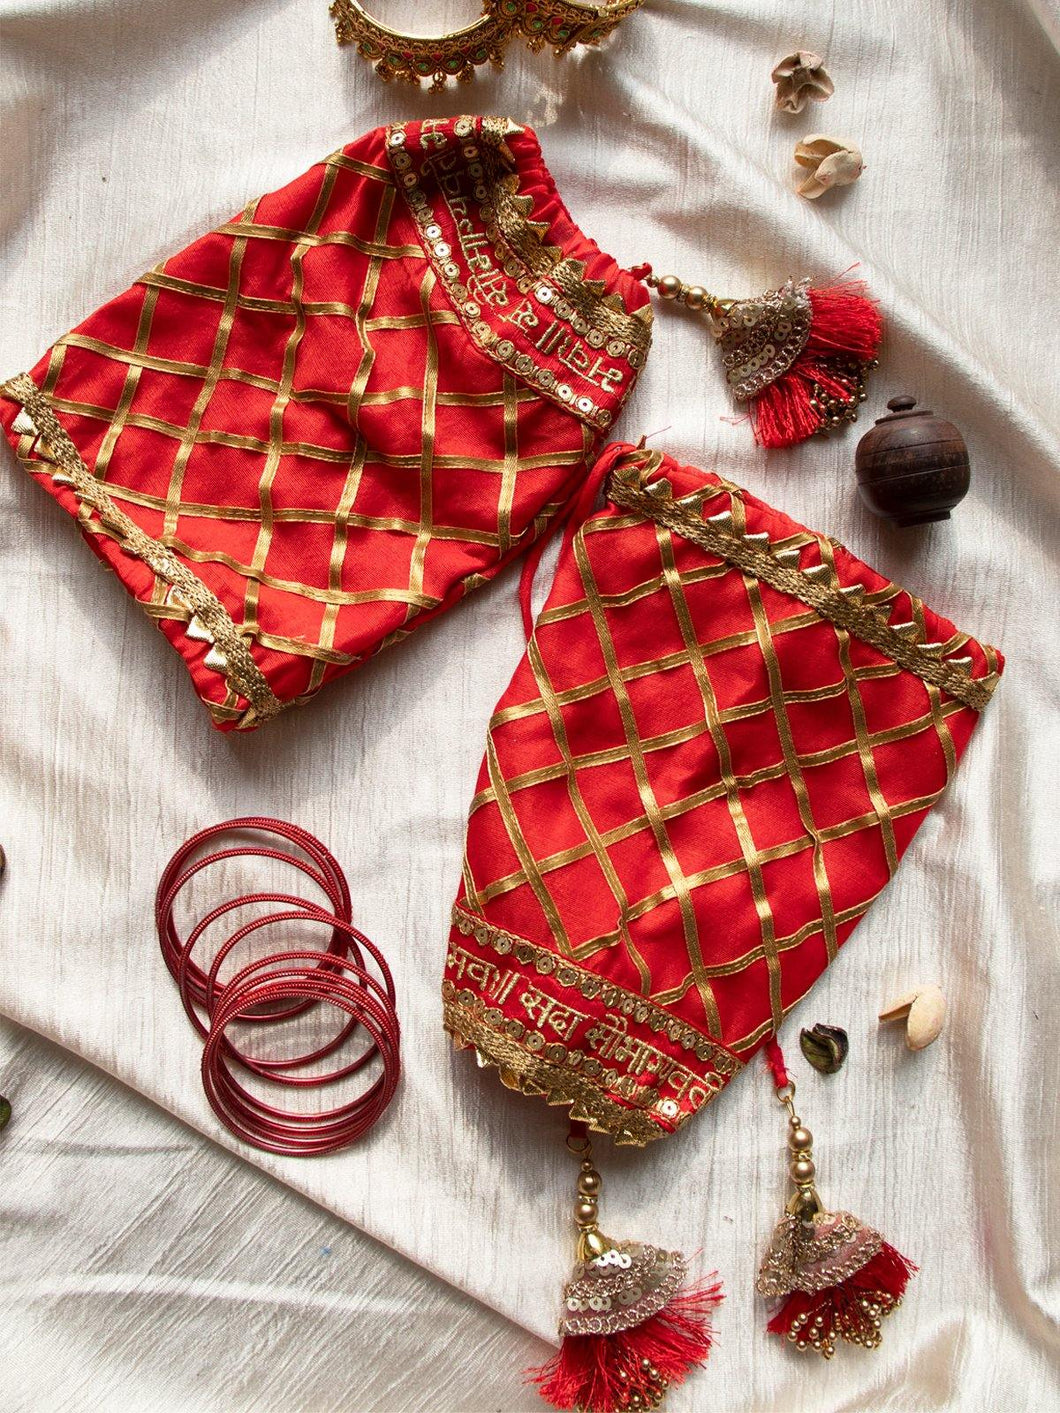 Red Embroidered and Gota Patti Chooda Covers - The Wedding Brigade